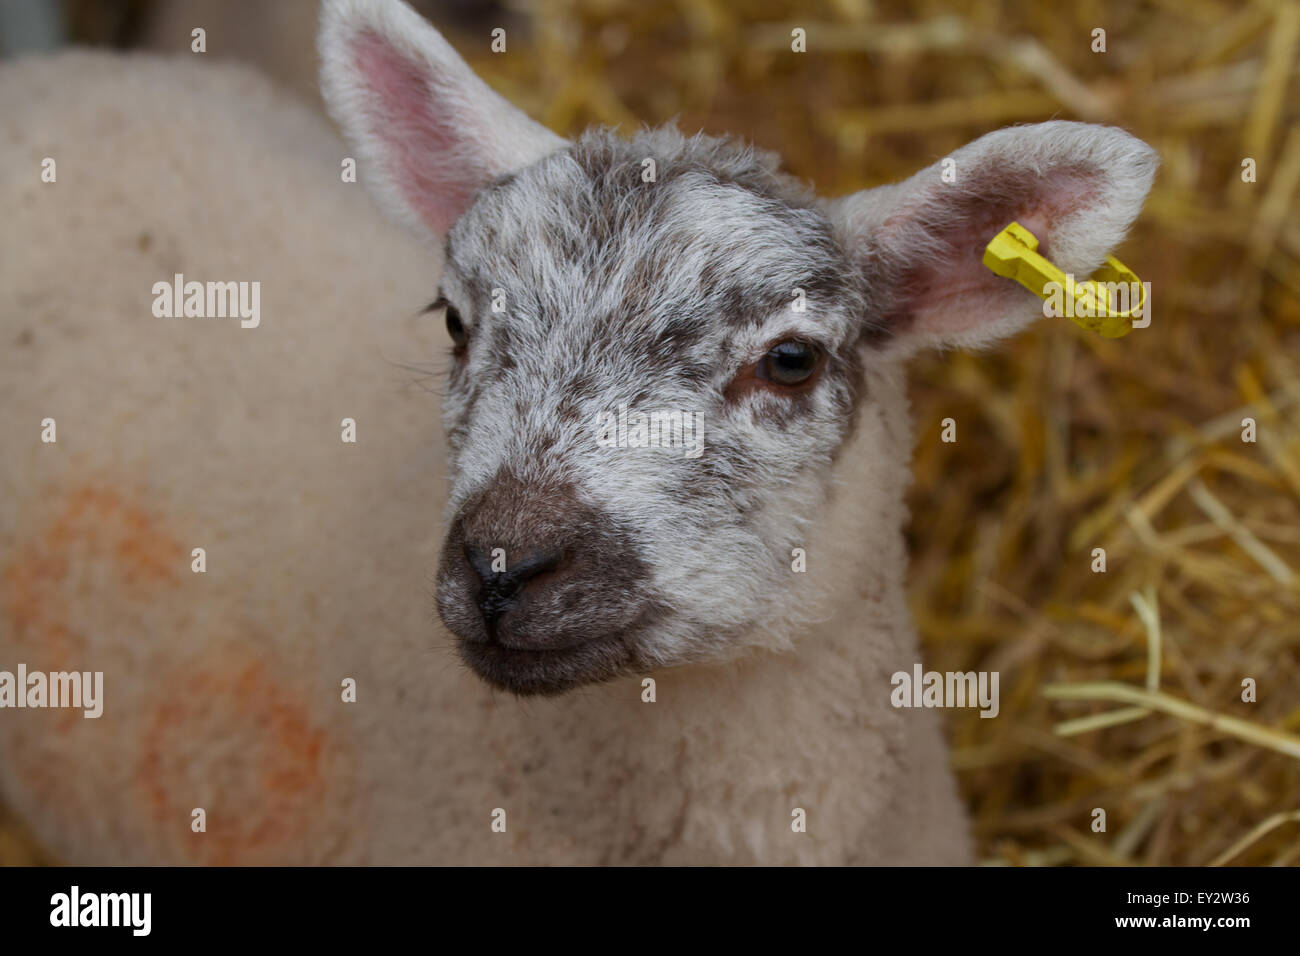 Lamb With Ear Tag Uk Stock Photo